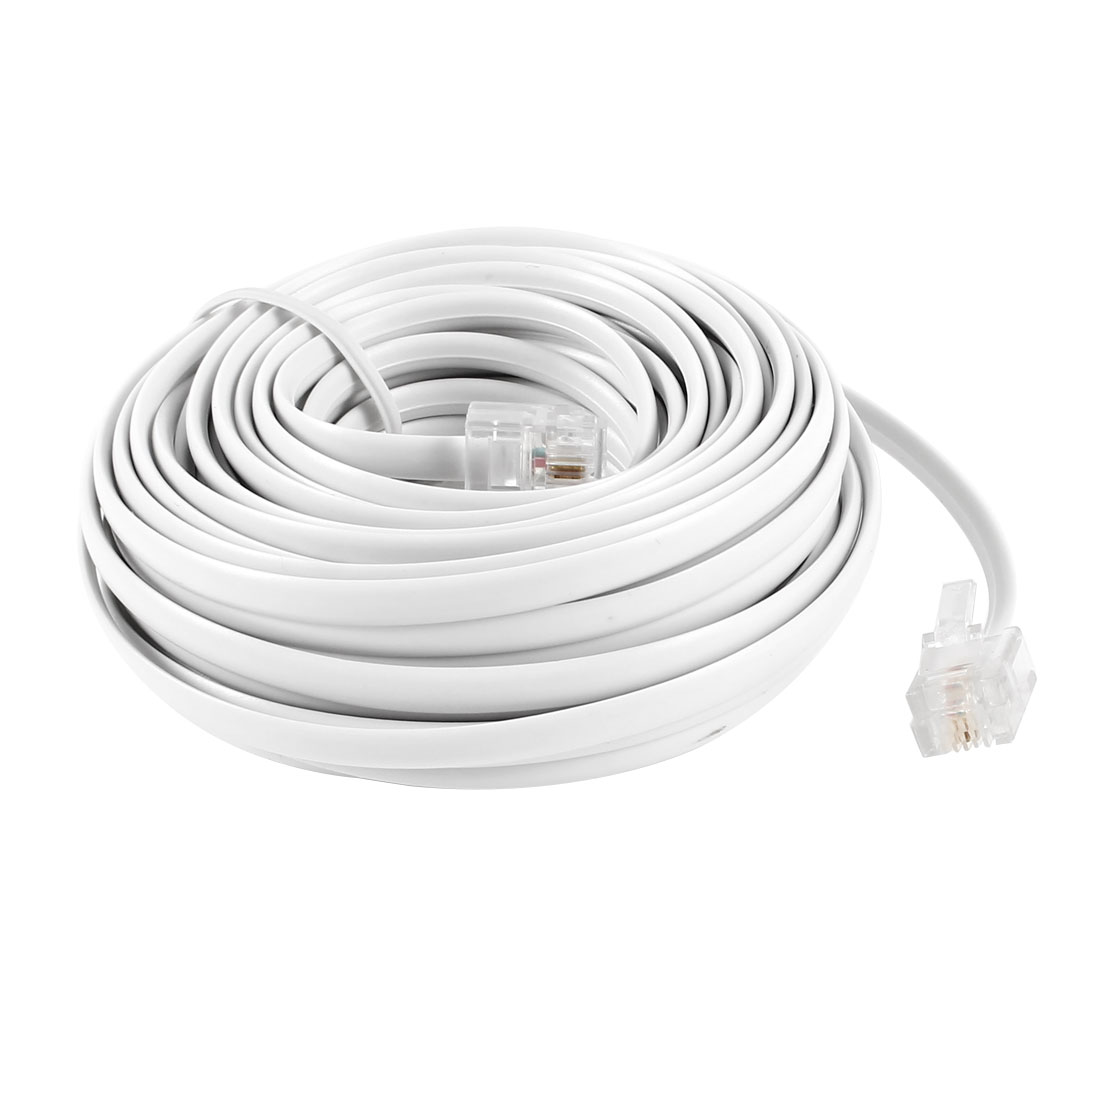 RJ11 6P2C Modular Telephone Phone Cables Wire Cord Line White 9M 30ft